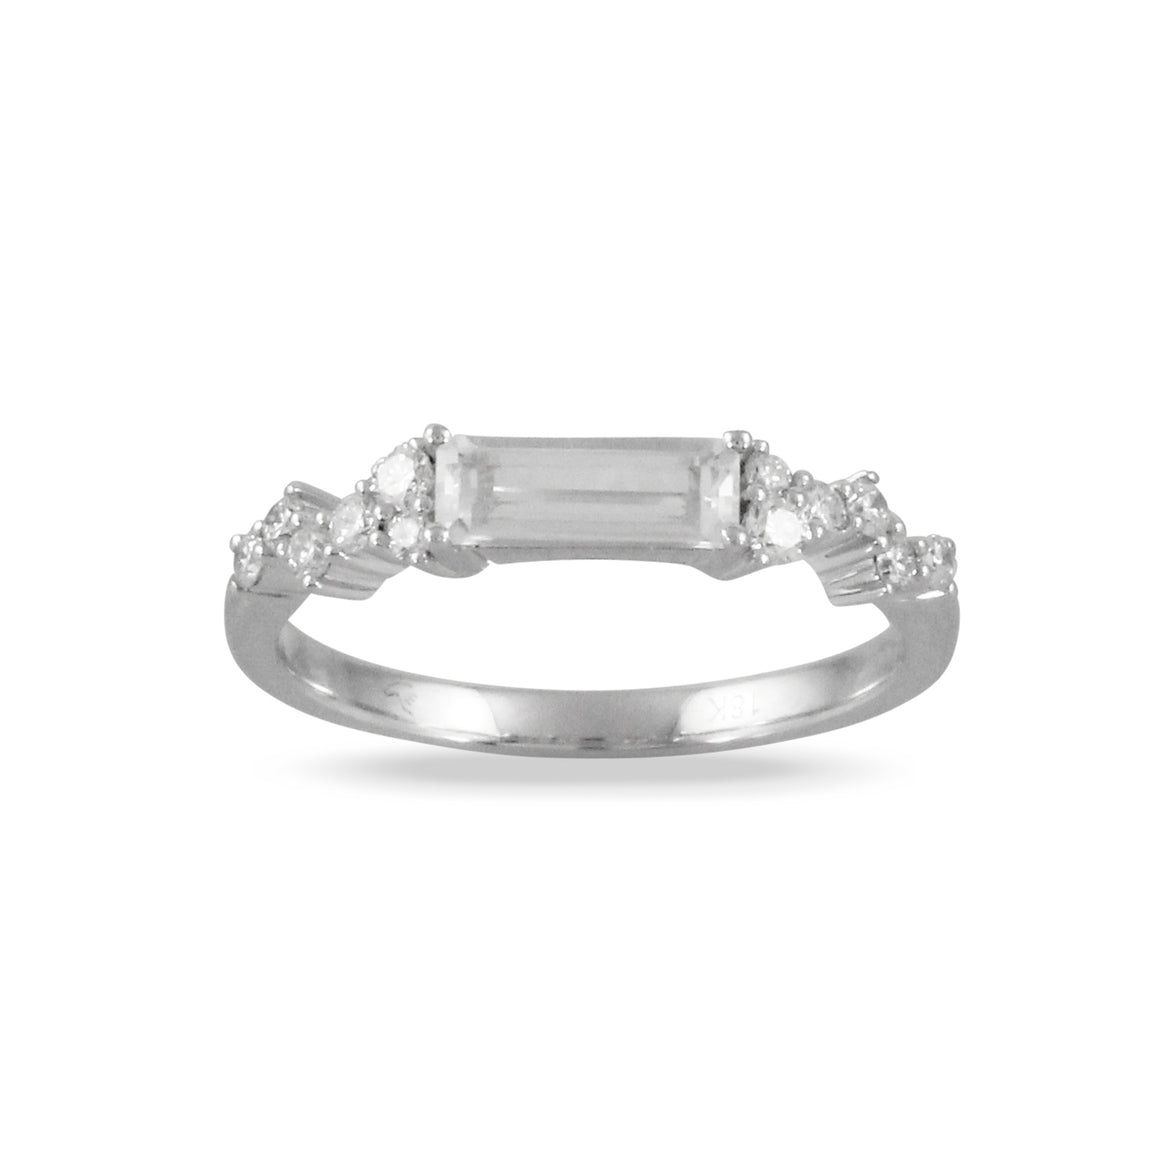 White Topaz and Diamond Ring by Doves - Talisman Collection Fine Jewelers